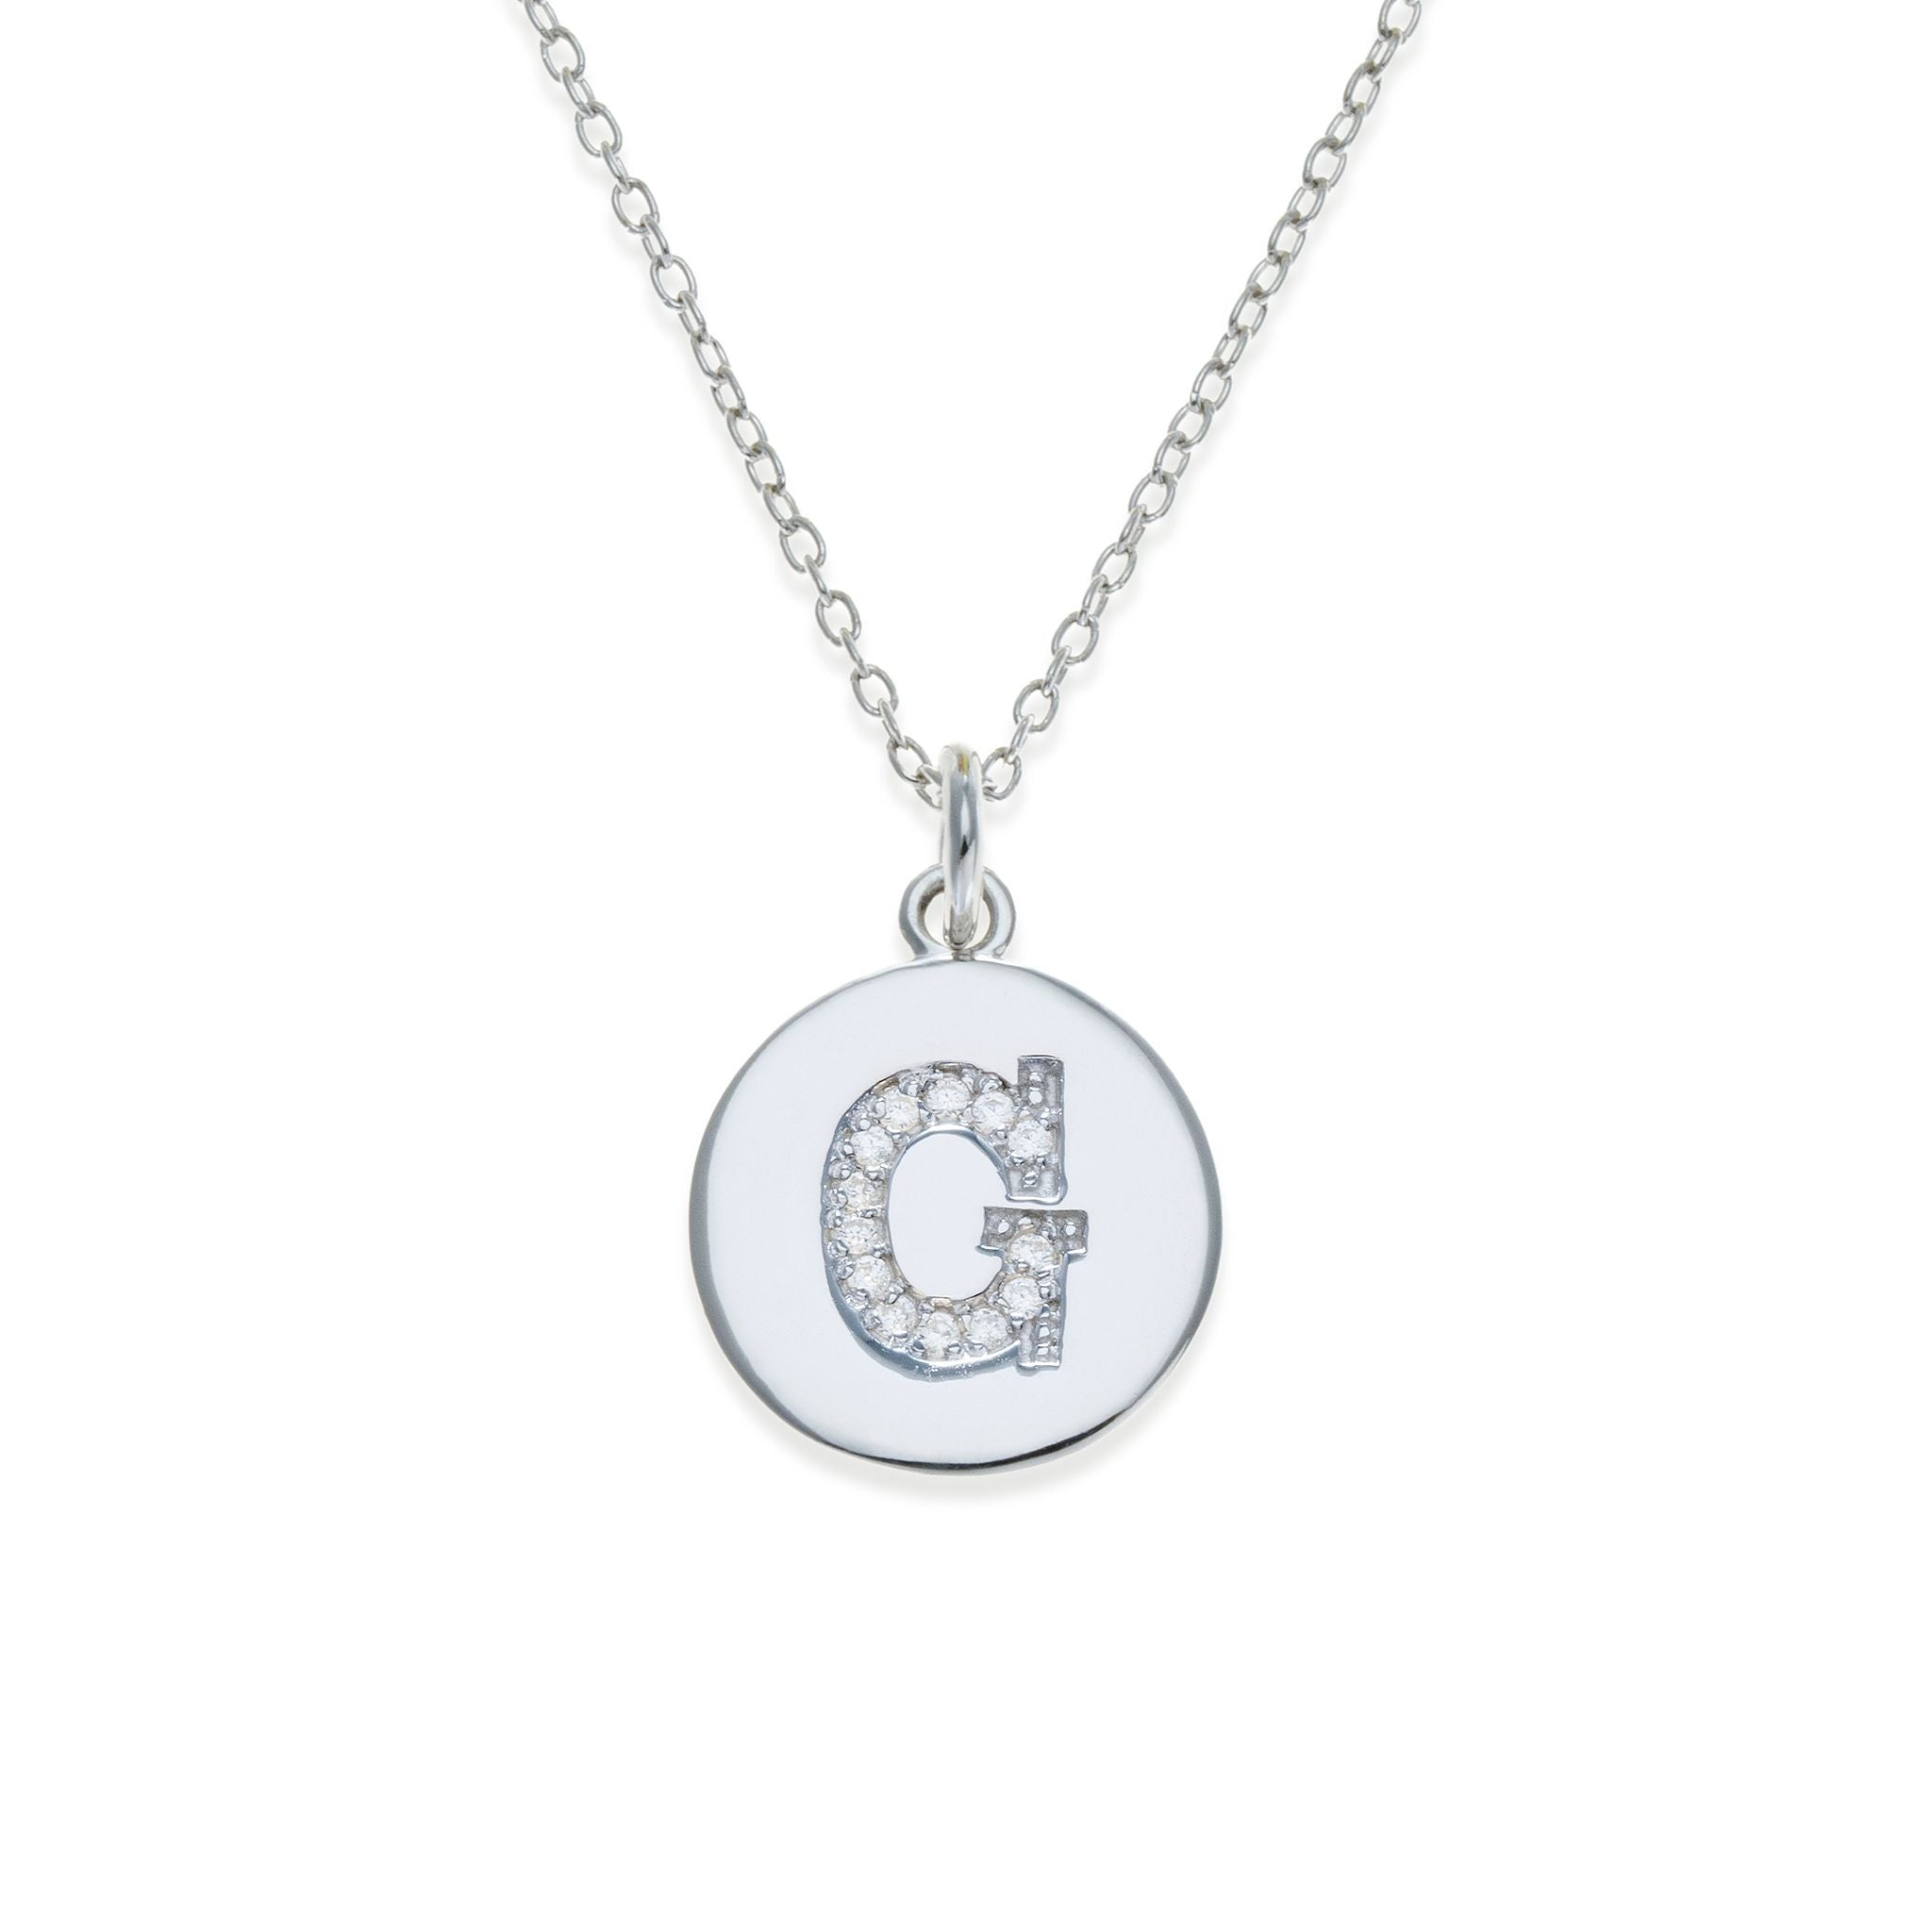 Sterling silver initial necklace g kith kin its personal sterling silver initial necklace g kith kin its personal collection aloadofball Gallery